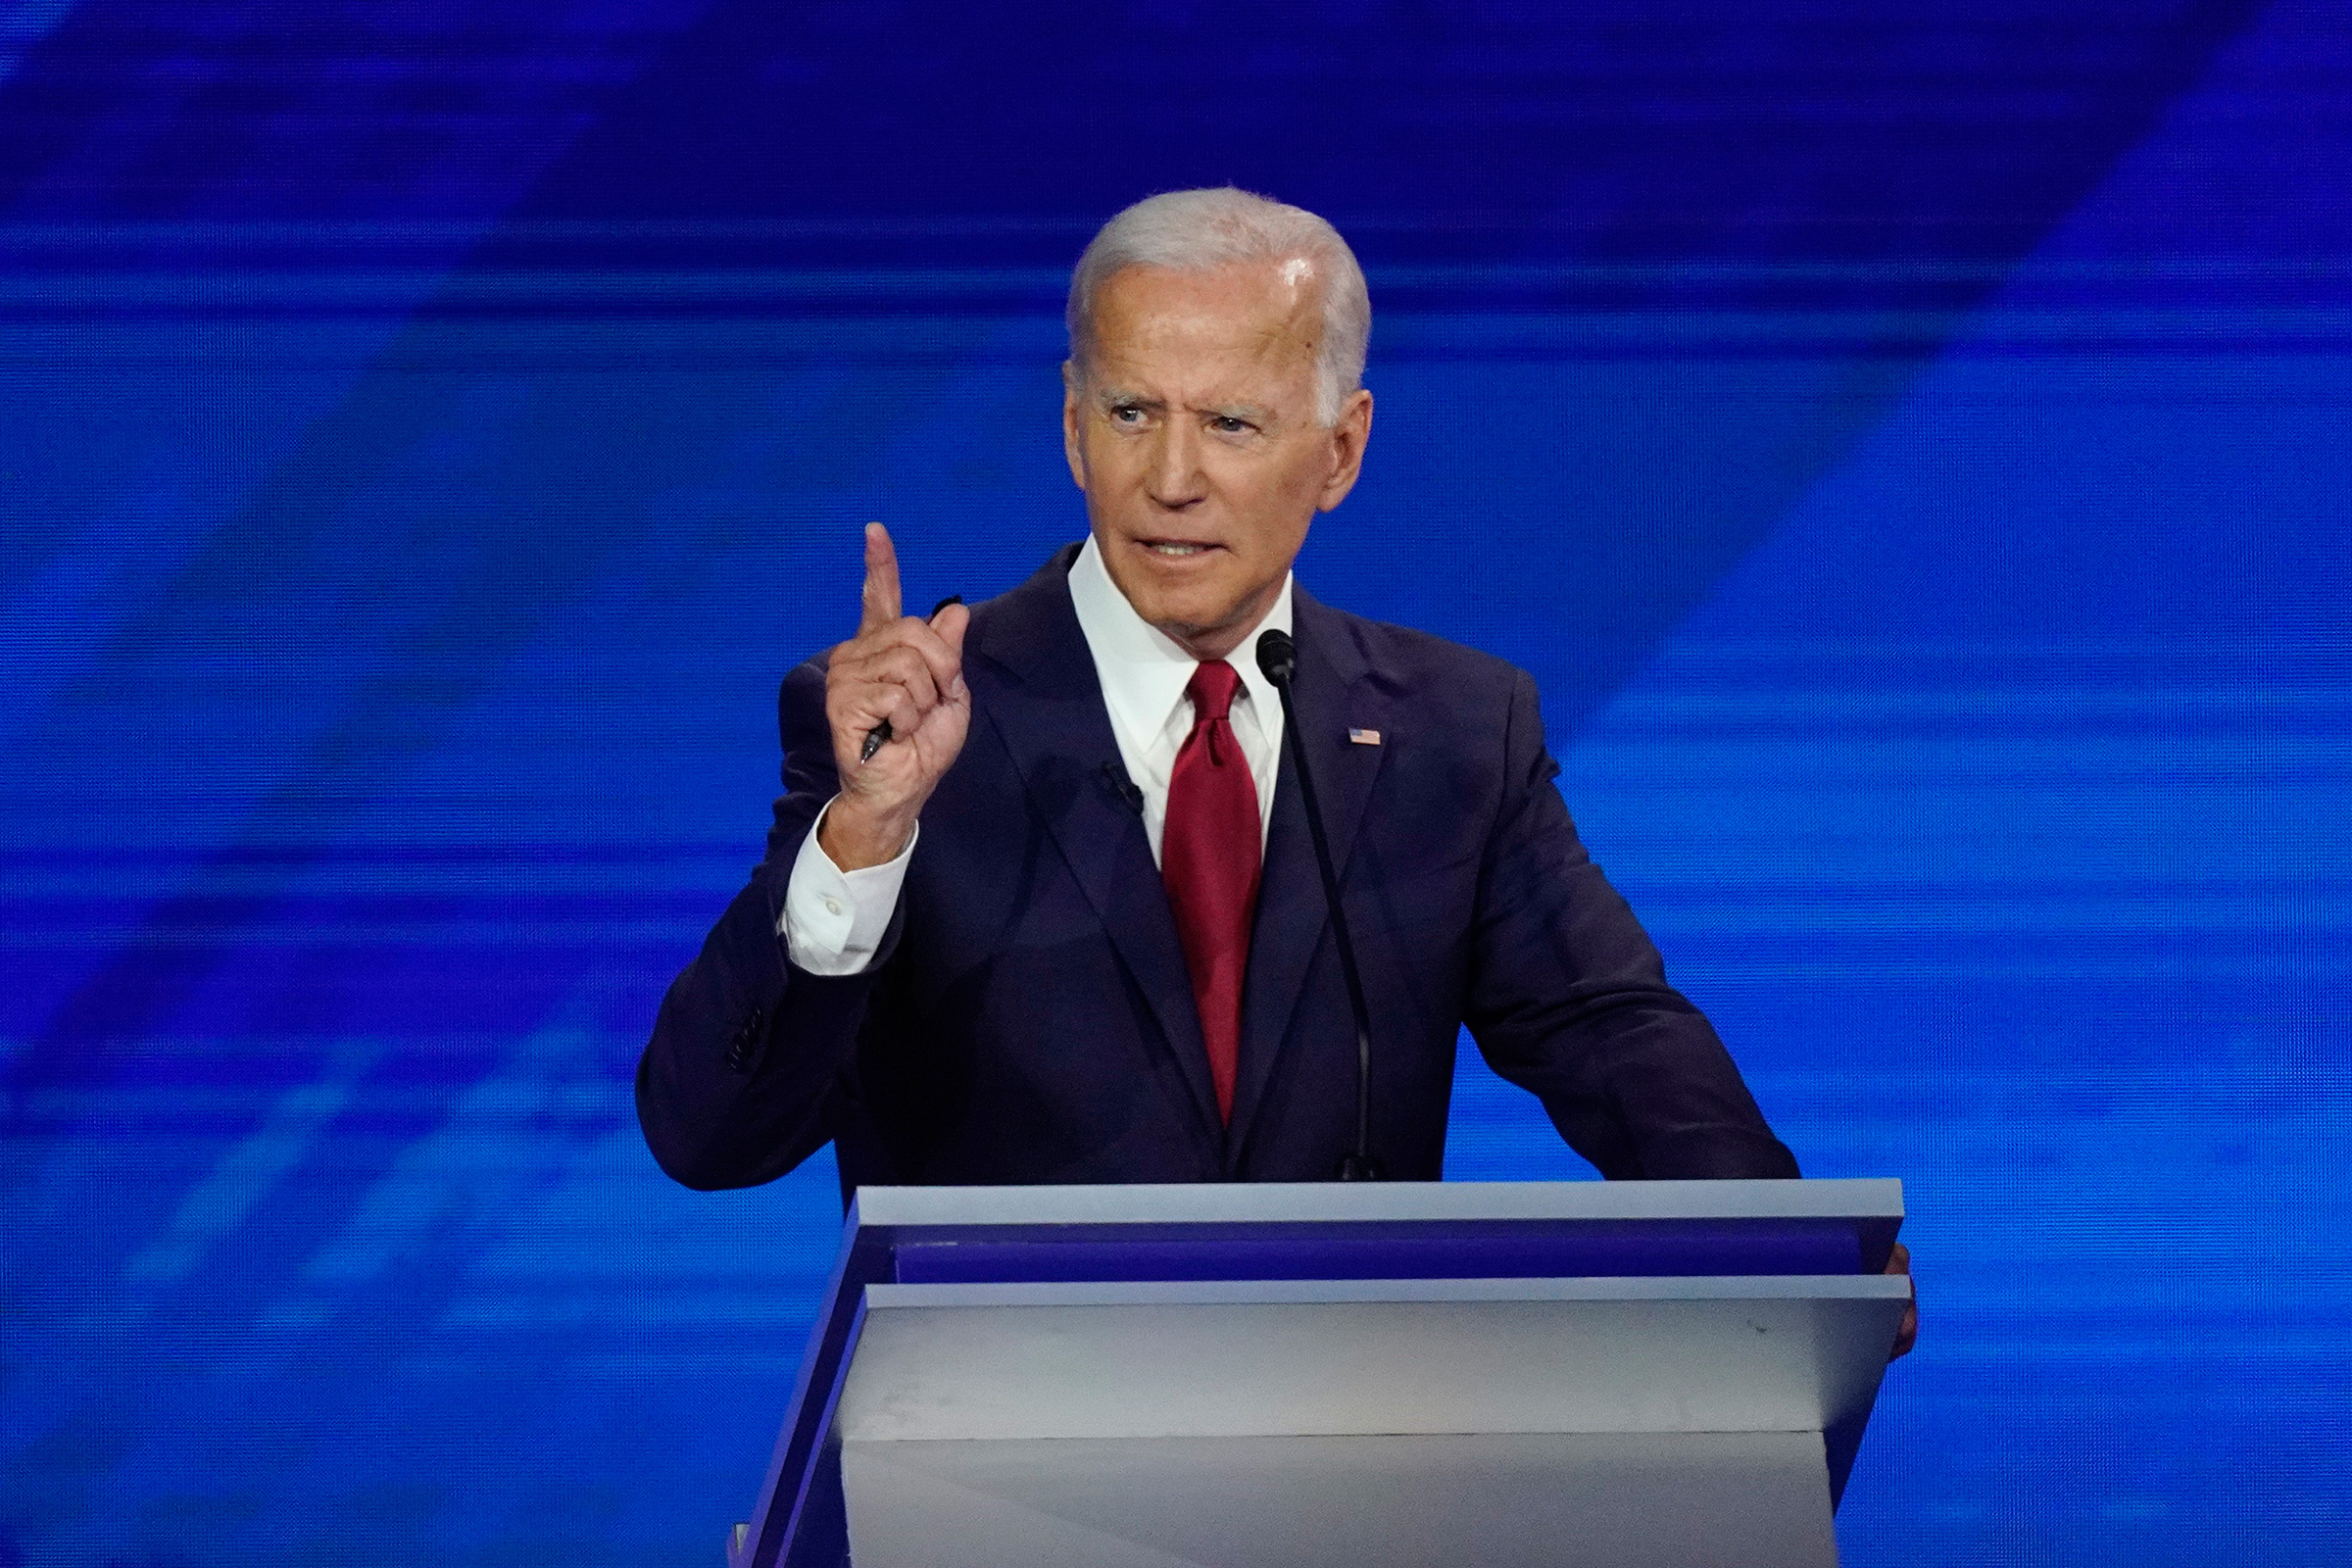 Former Vice President Joe Biden responds to a question Sept. 12, 2019, during a Democratic presidential primary debate hosted by ABC at Texas Southern University in Houston.